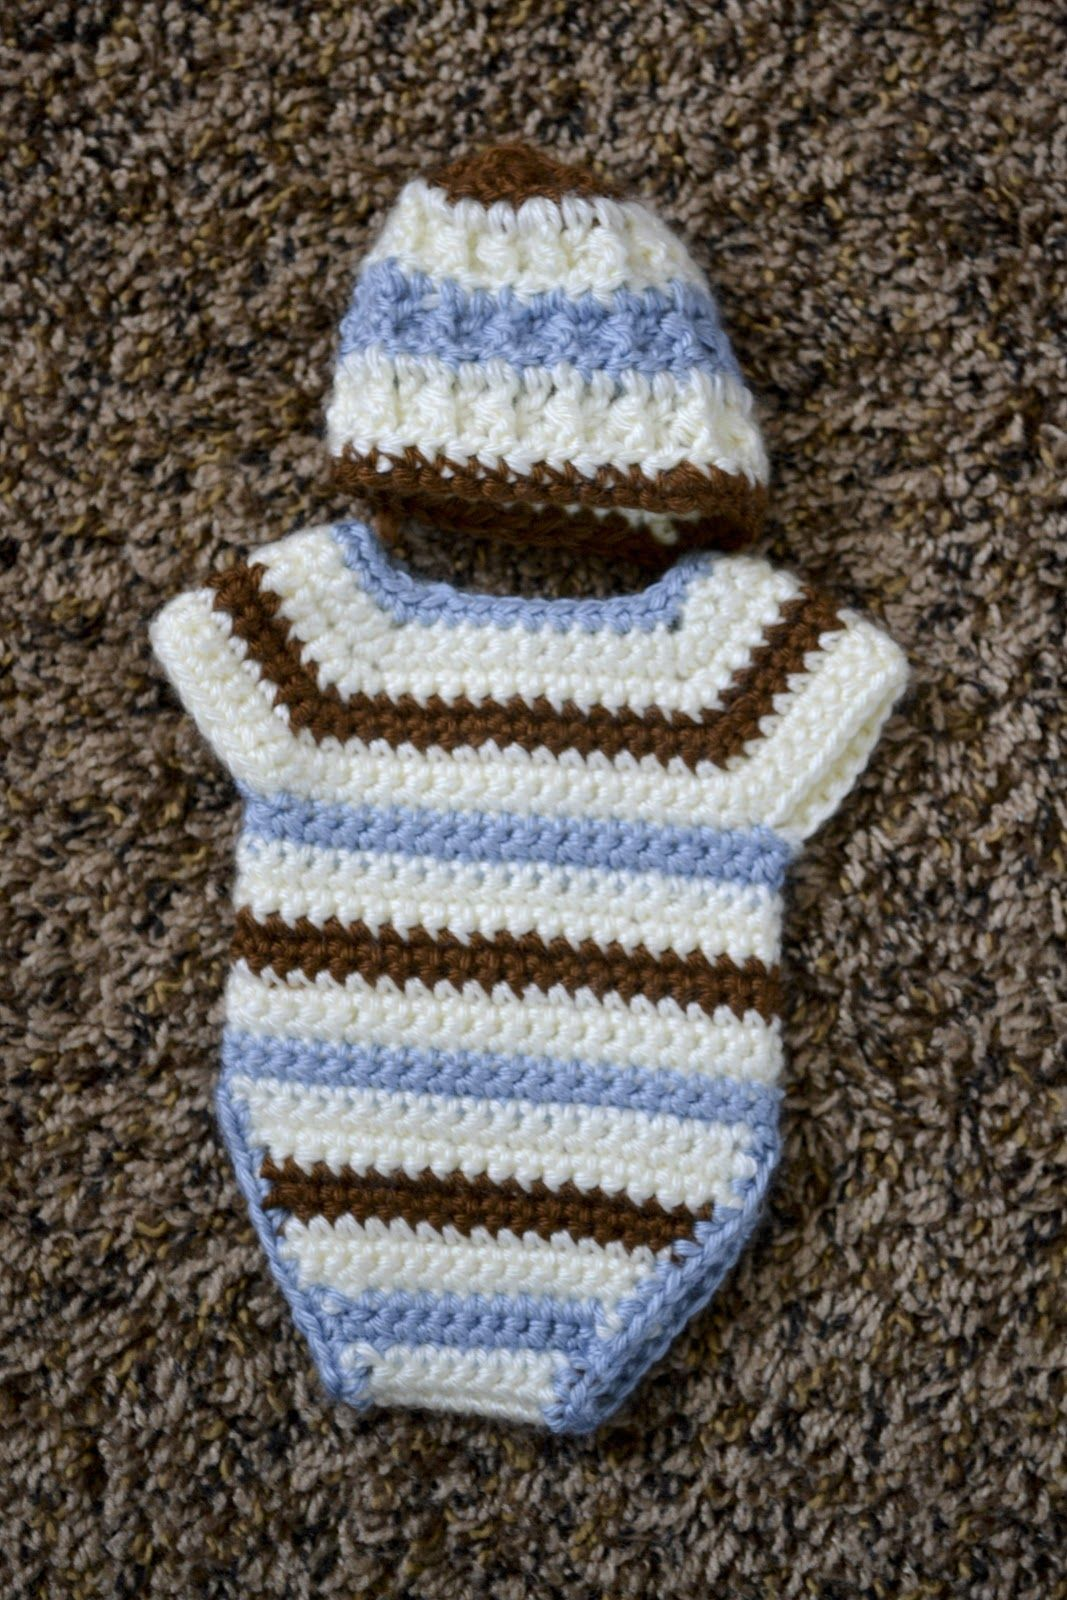 Lots of info about making angel baby outfits - links for patterns ...